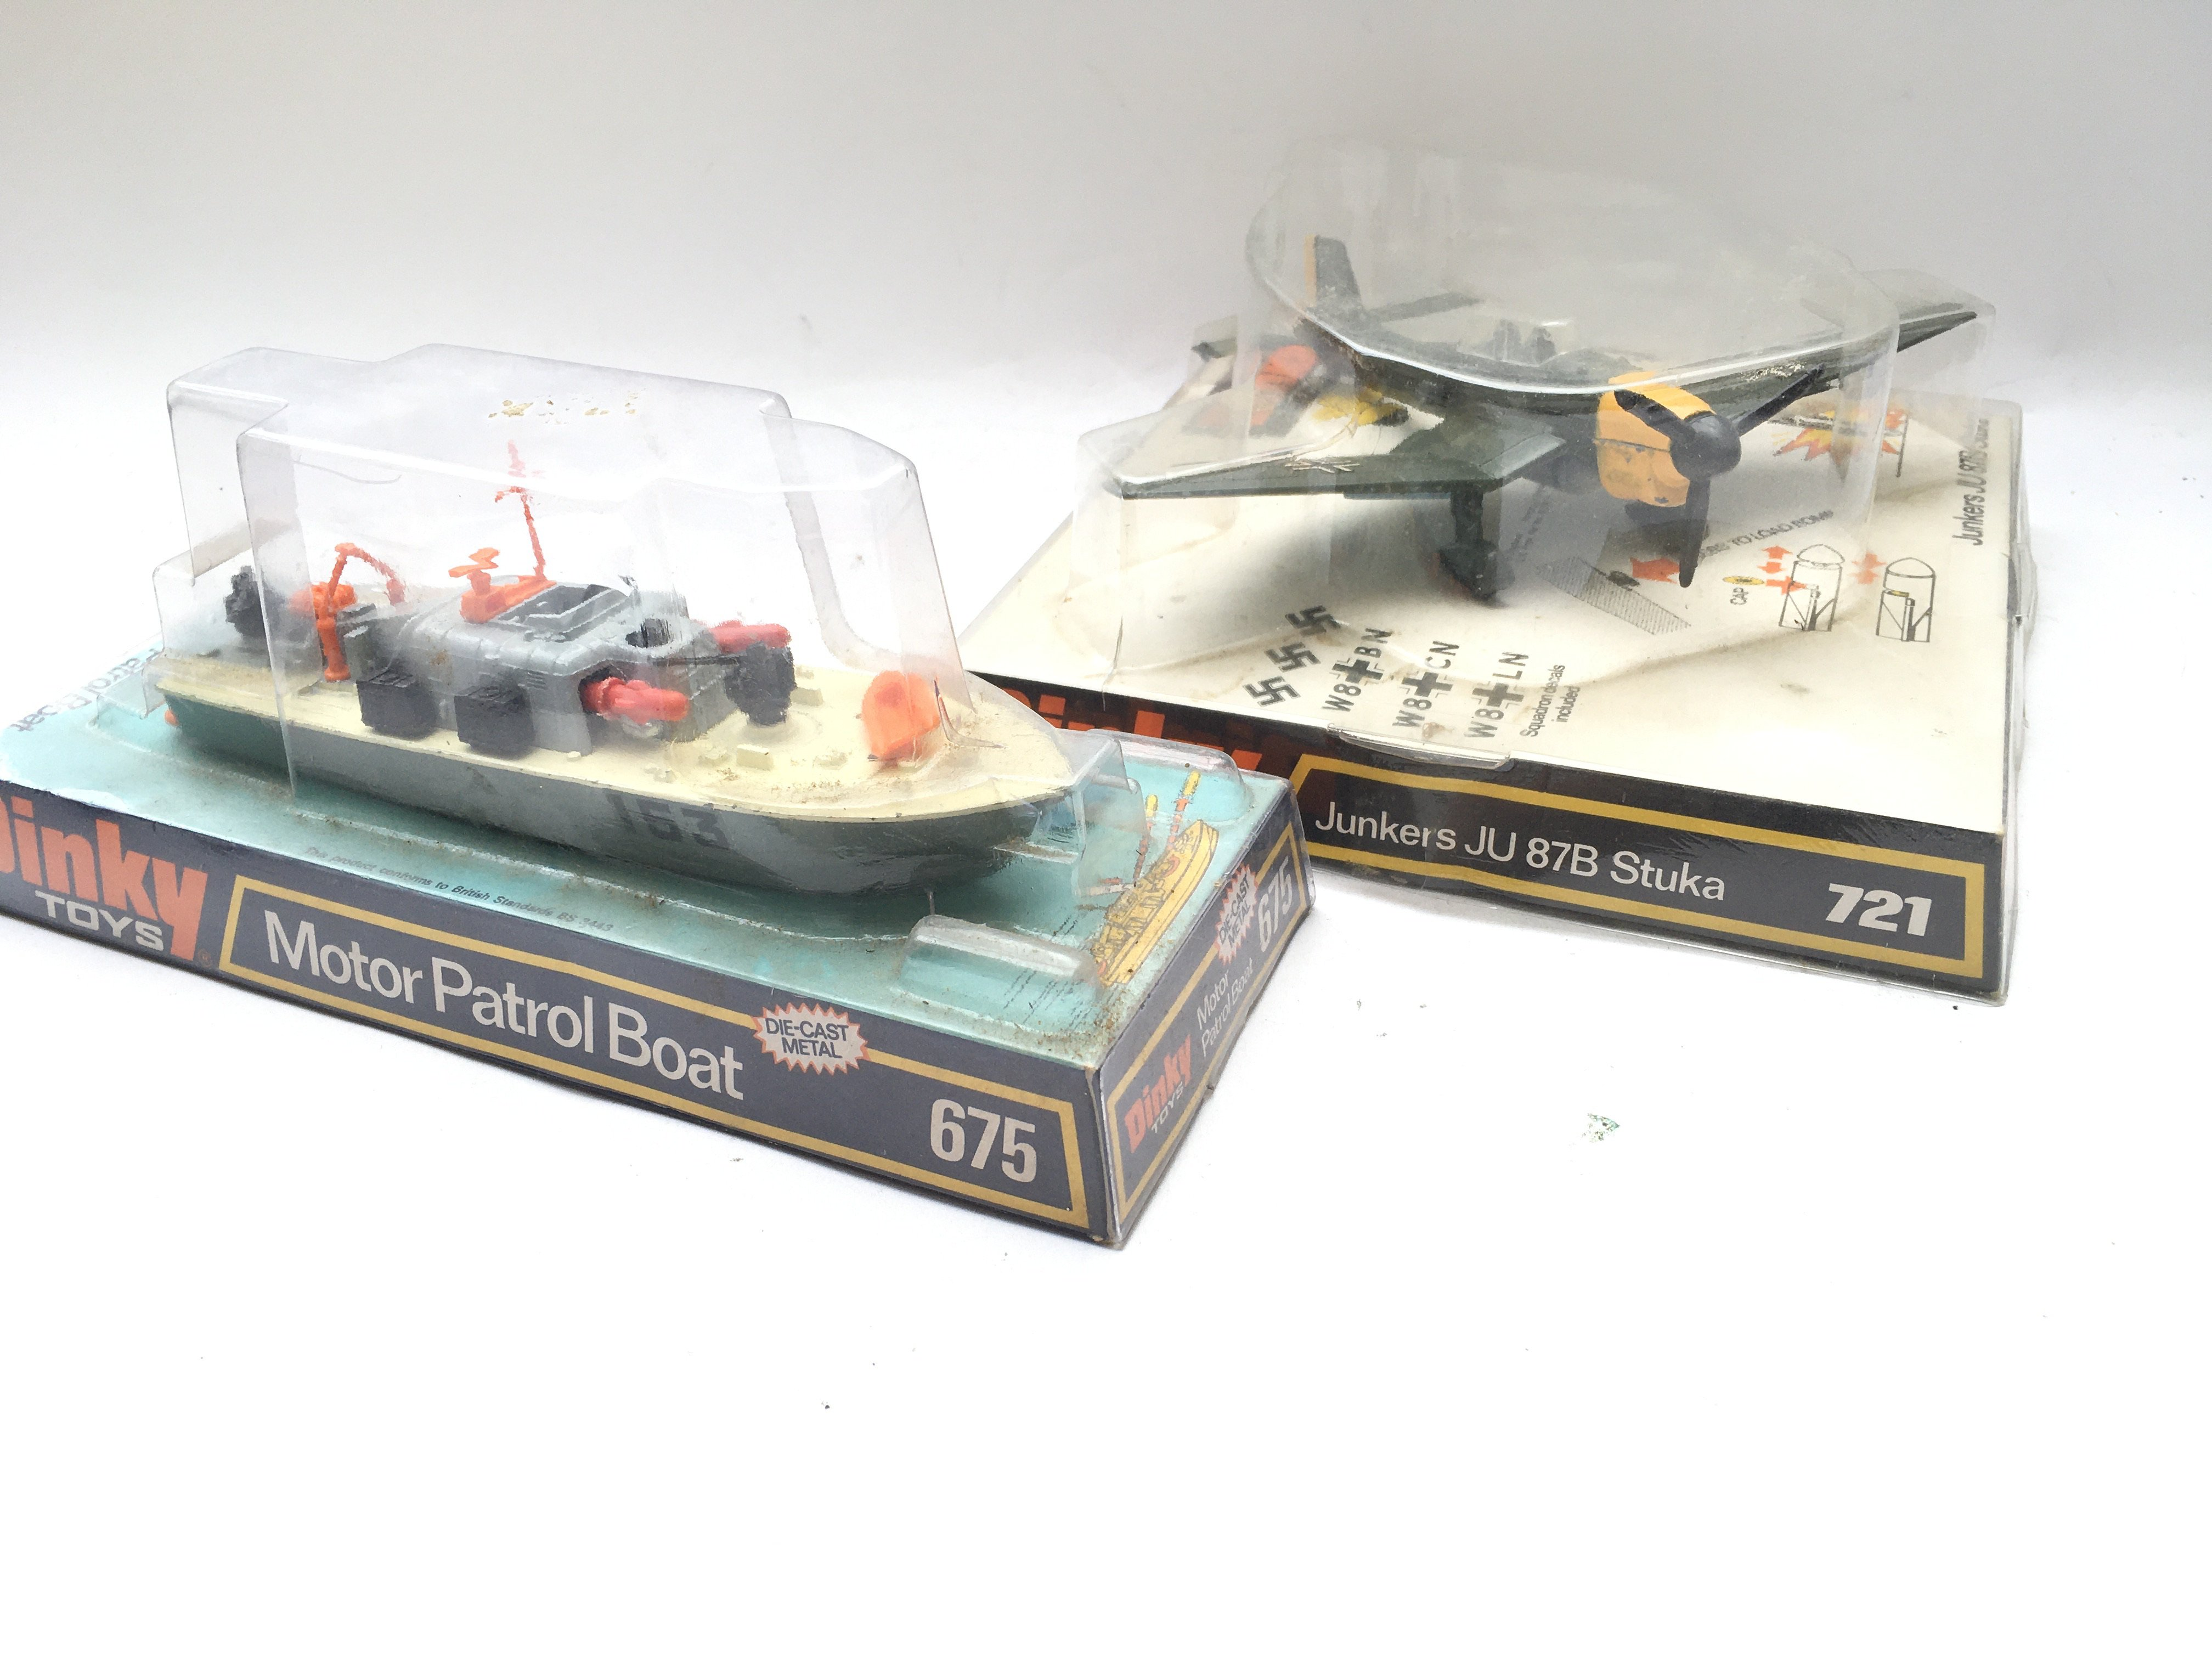 A Dinky Toys Motor Patrol Boat boxed #675 and a ju